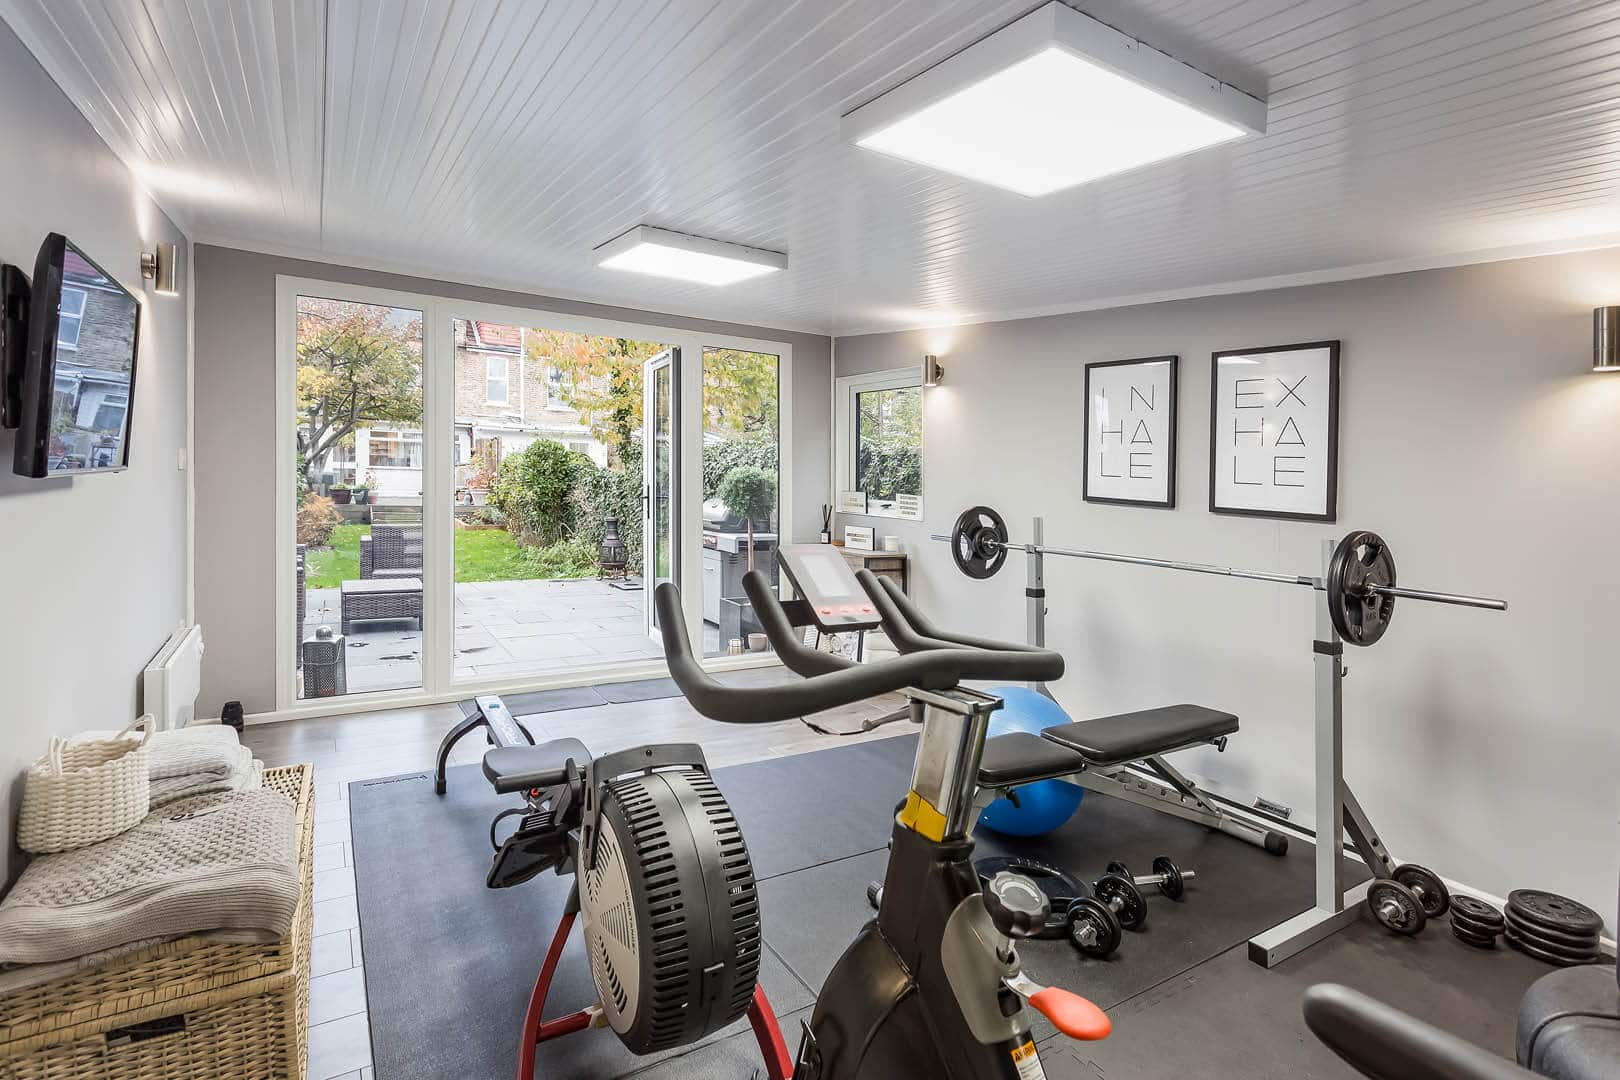 home gym equipment and weights